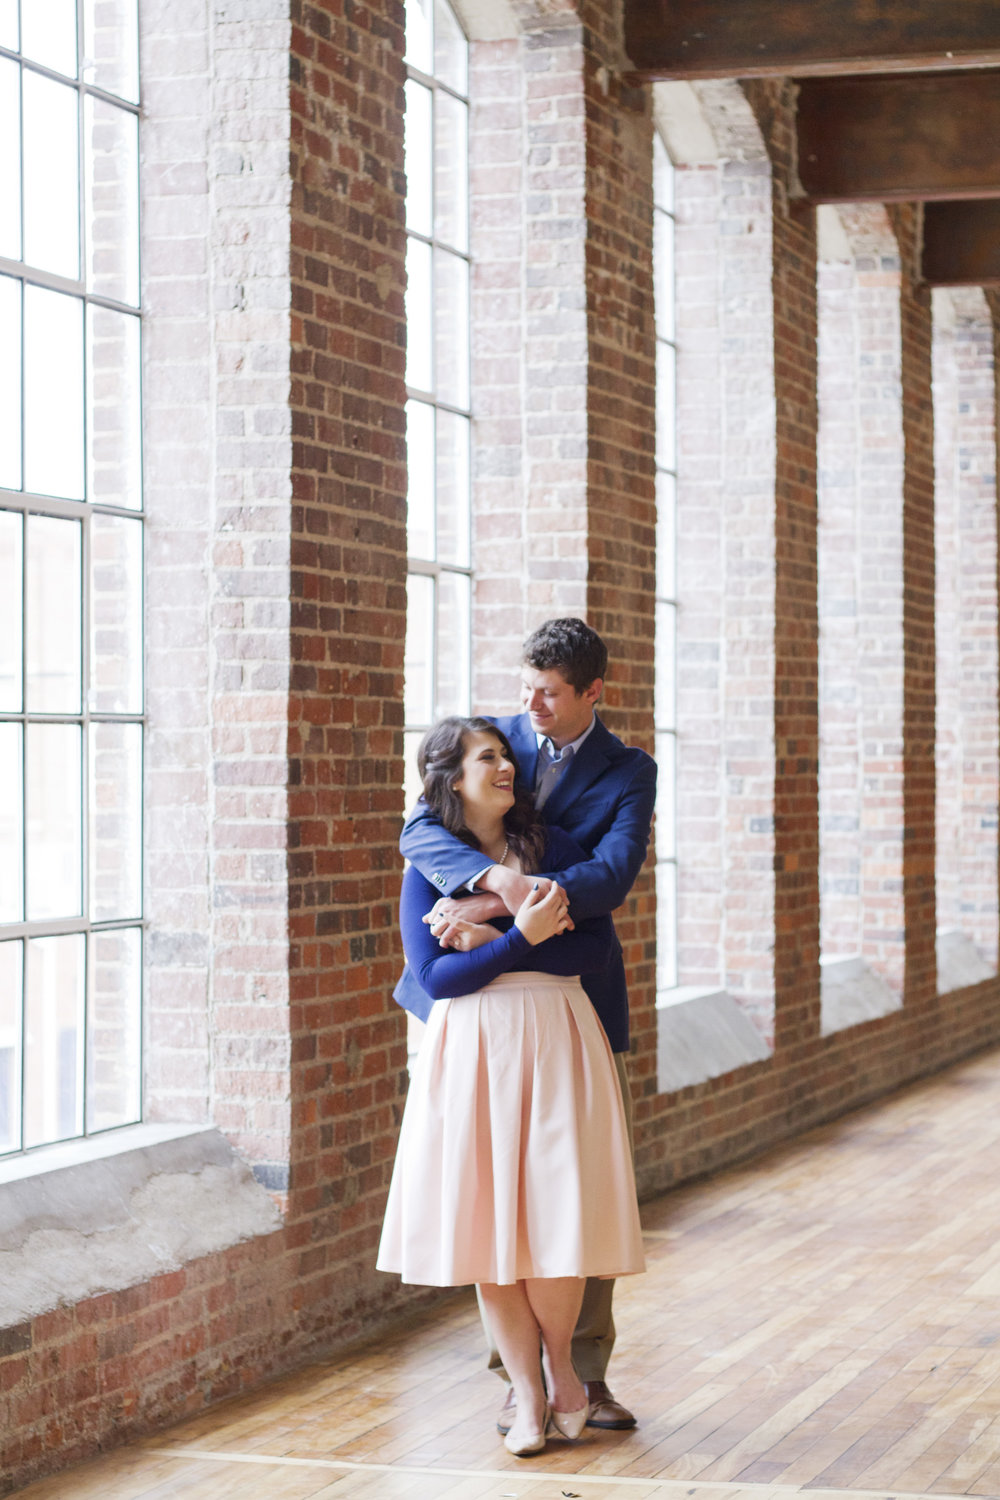 Revolution Mill Engagement Photography 016.jpg